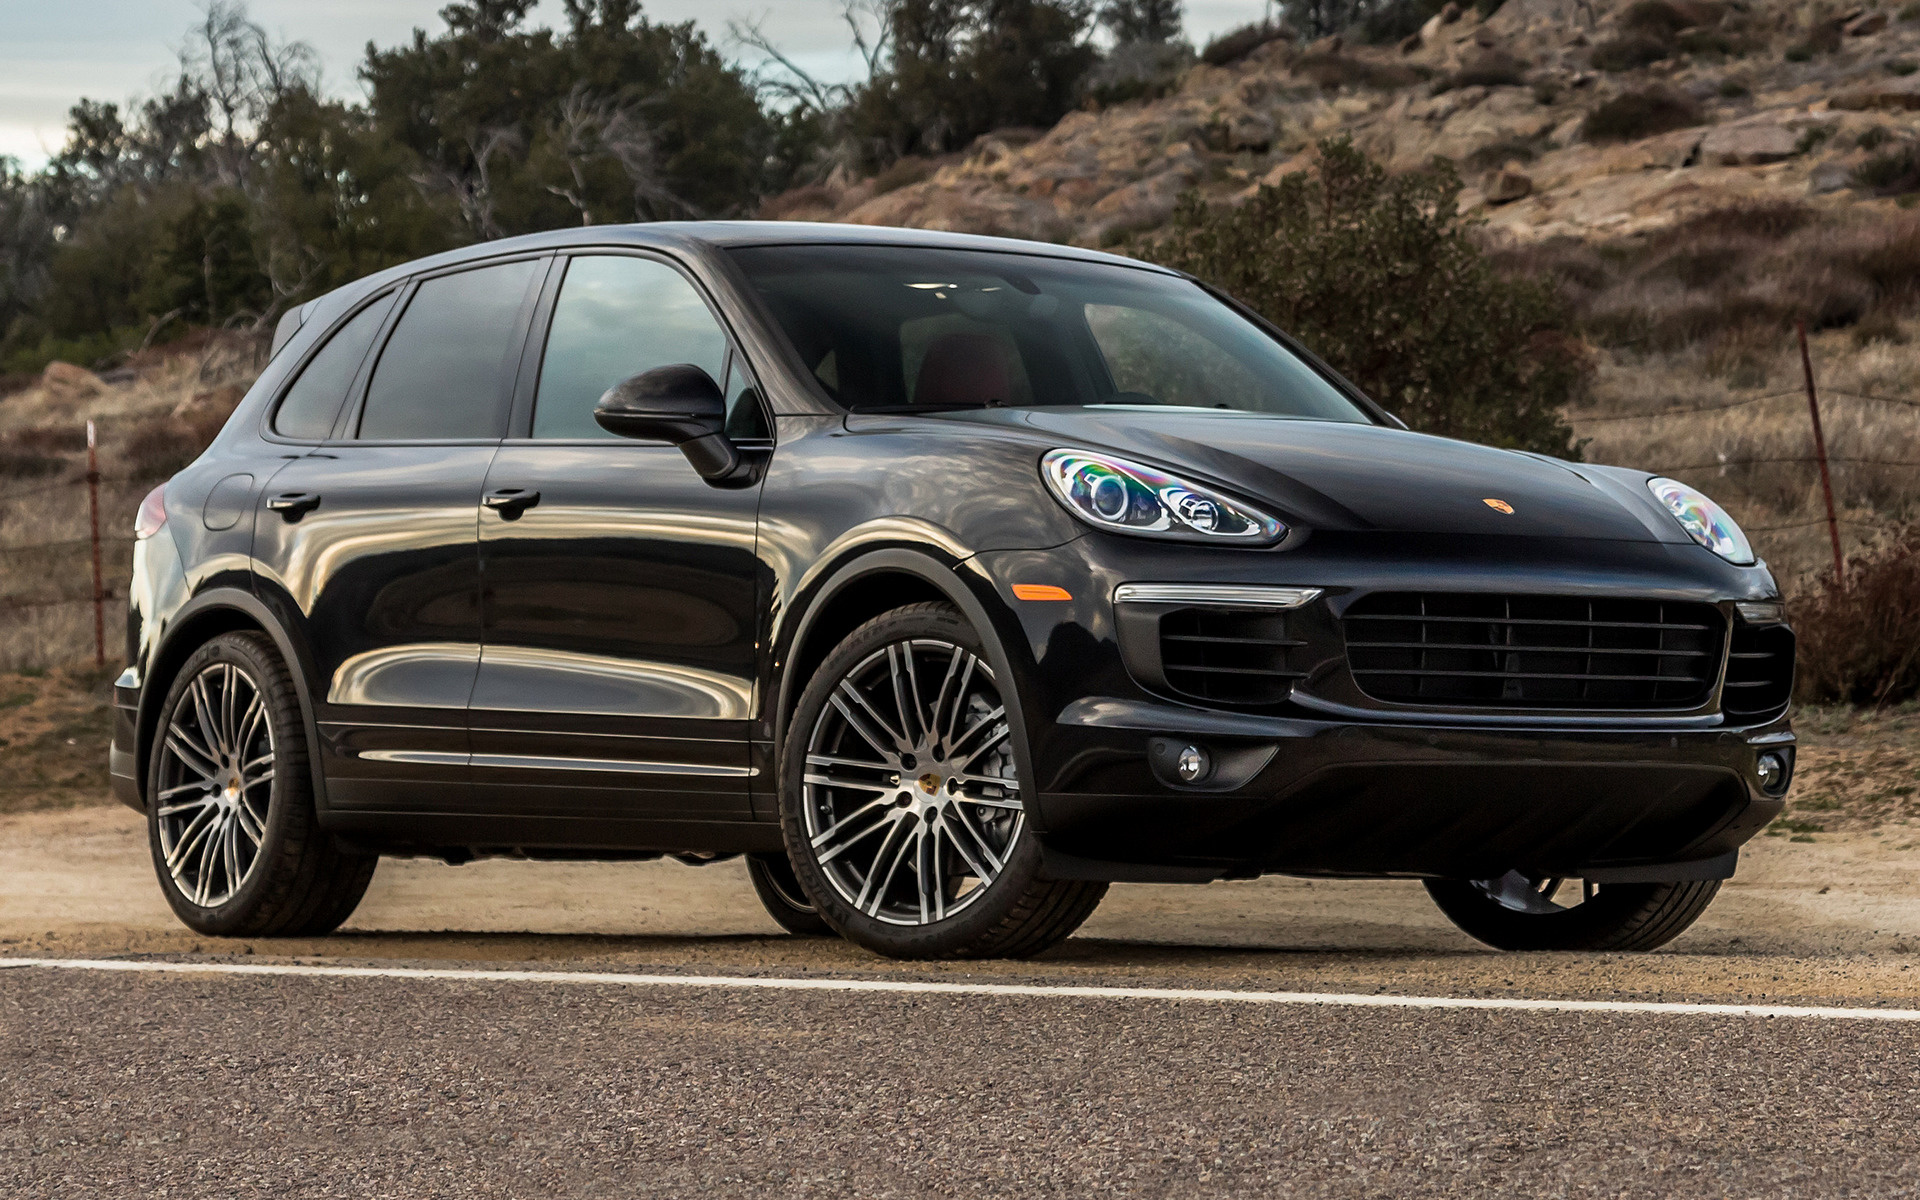 Porsche Cayenne S 2015 US Wallpapers and HD Images  Car Pixel